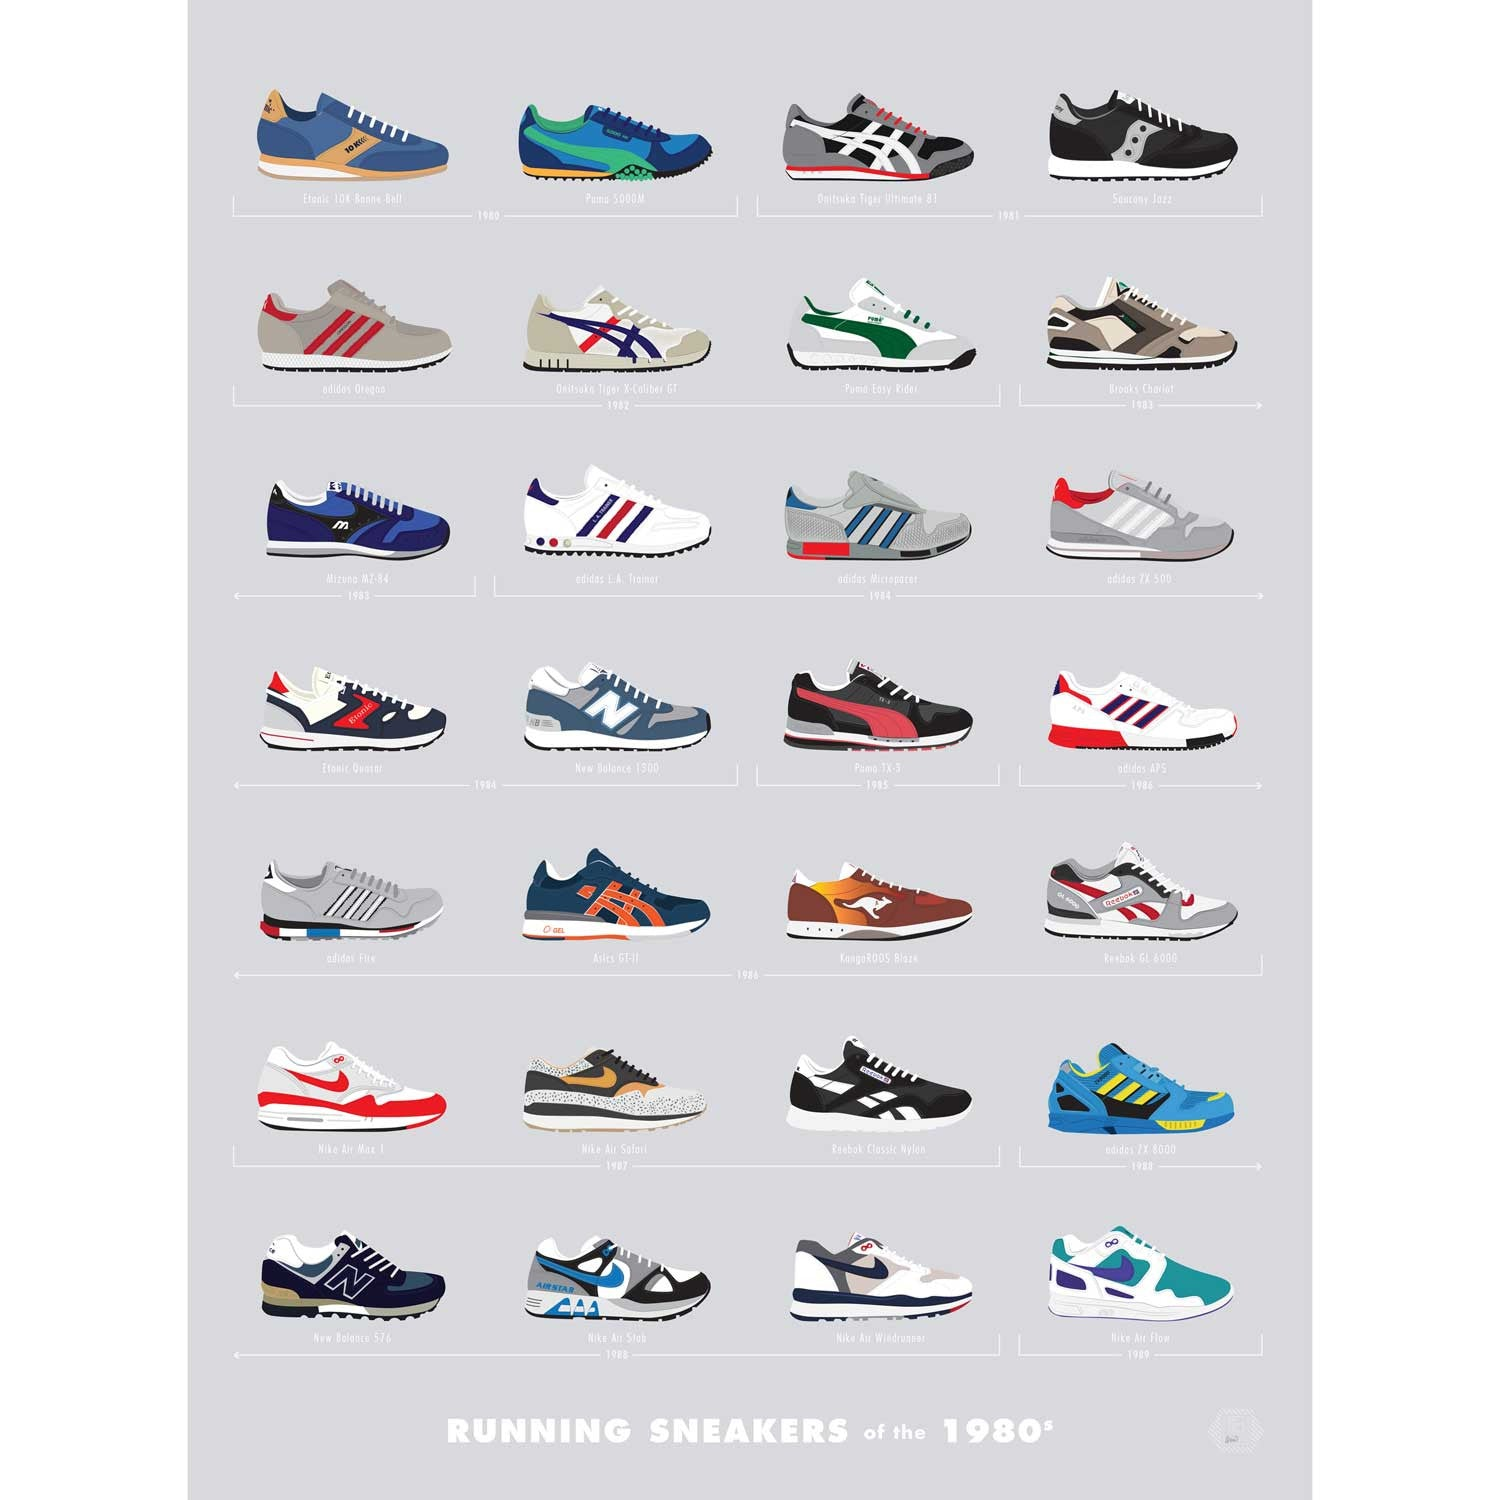 Running Sneakers of the 1980's - 12x16